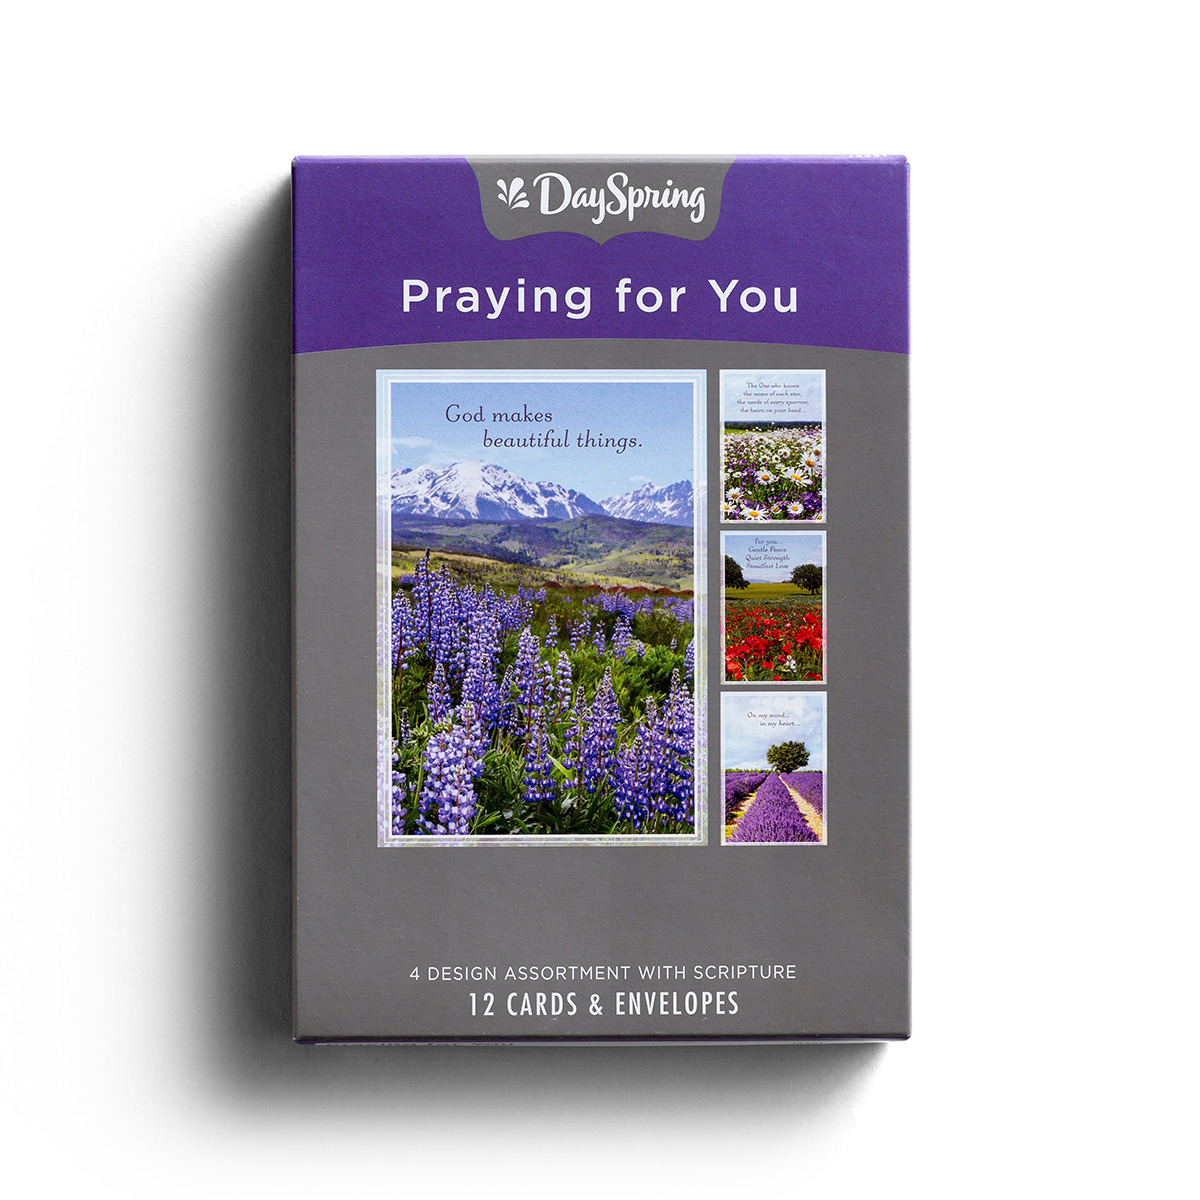 Praying for You - Difficult Times